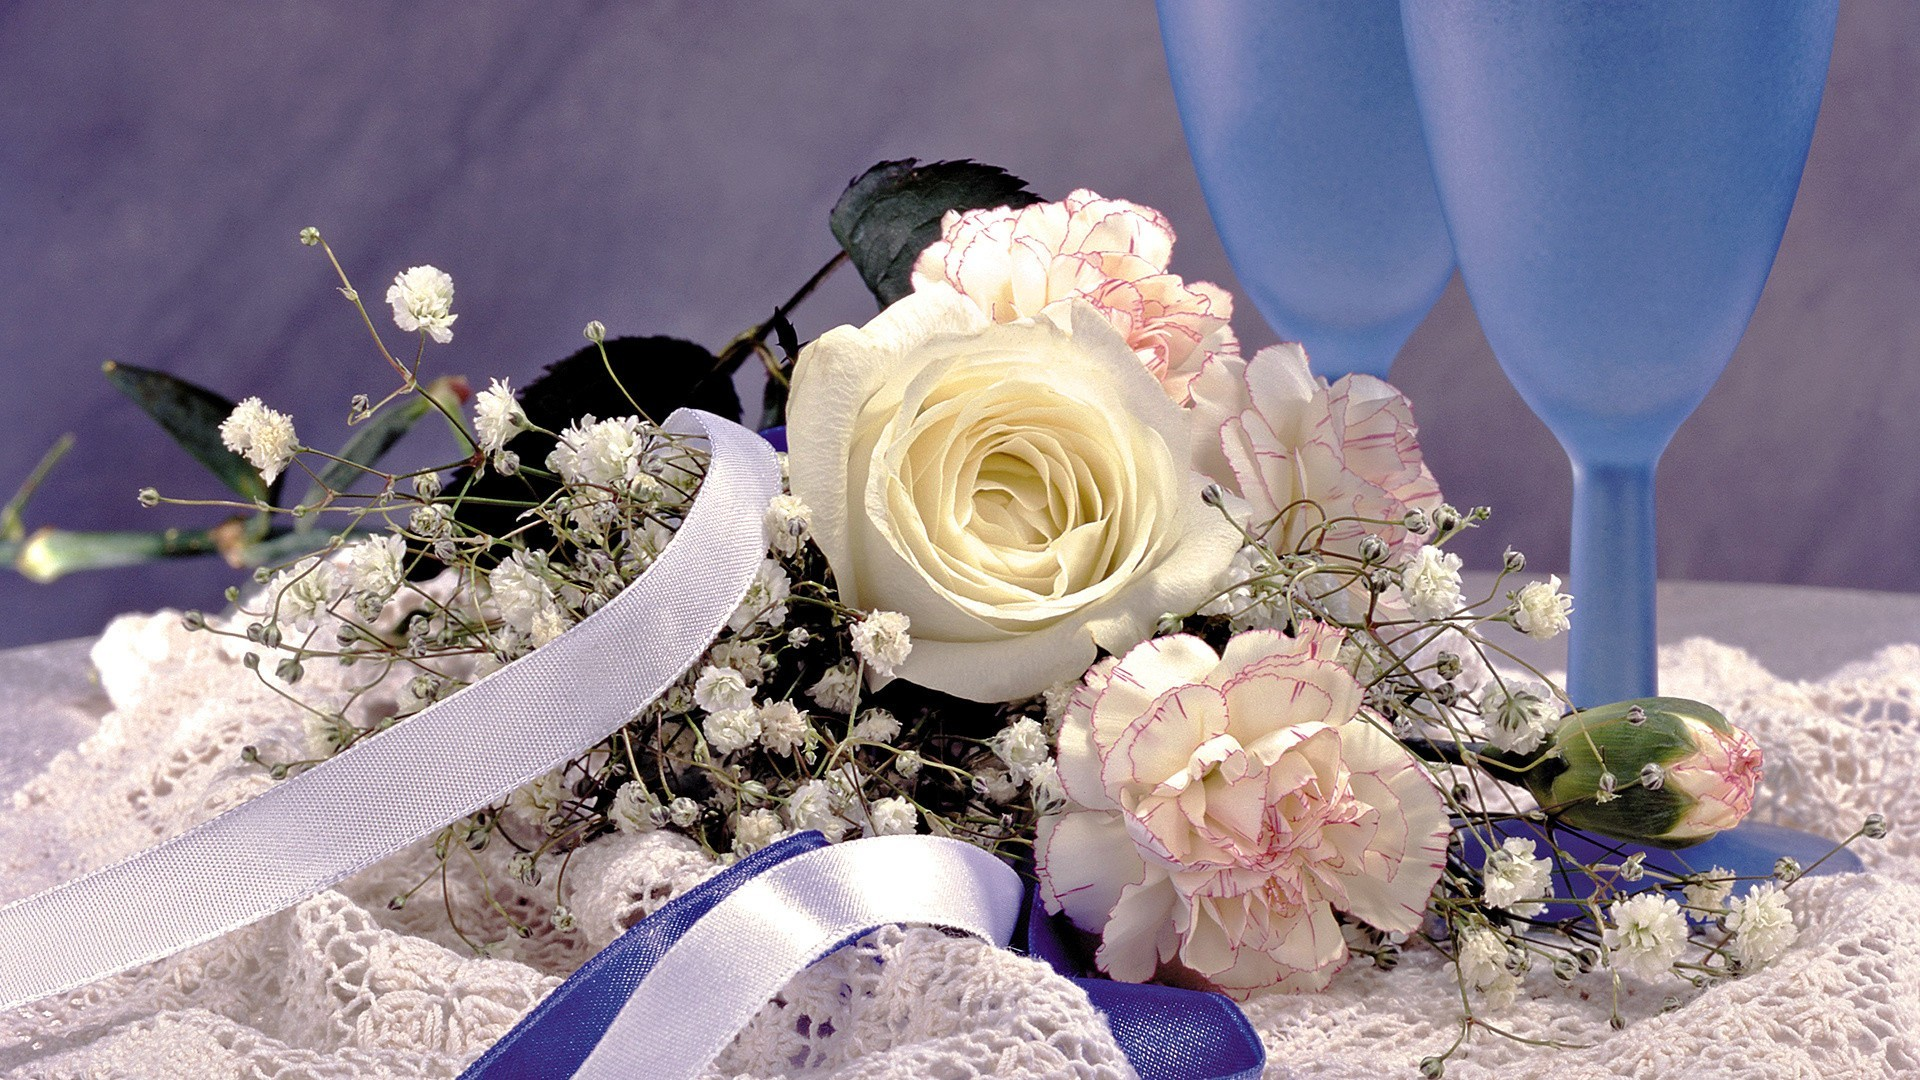 Res: 1920x1080, Year New Wedding Flowers Holiday Bride Bouquet Wallpaper Nature For Iphone  Detail